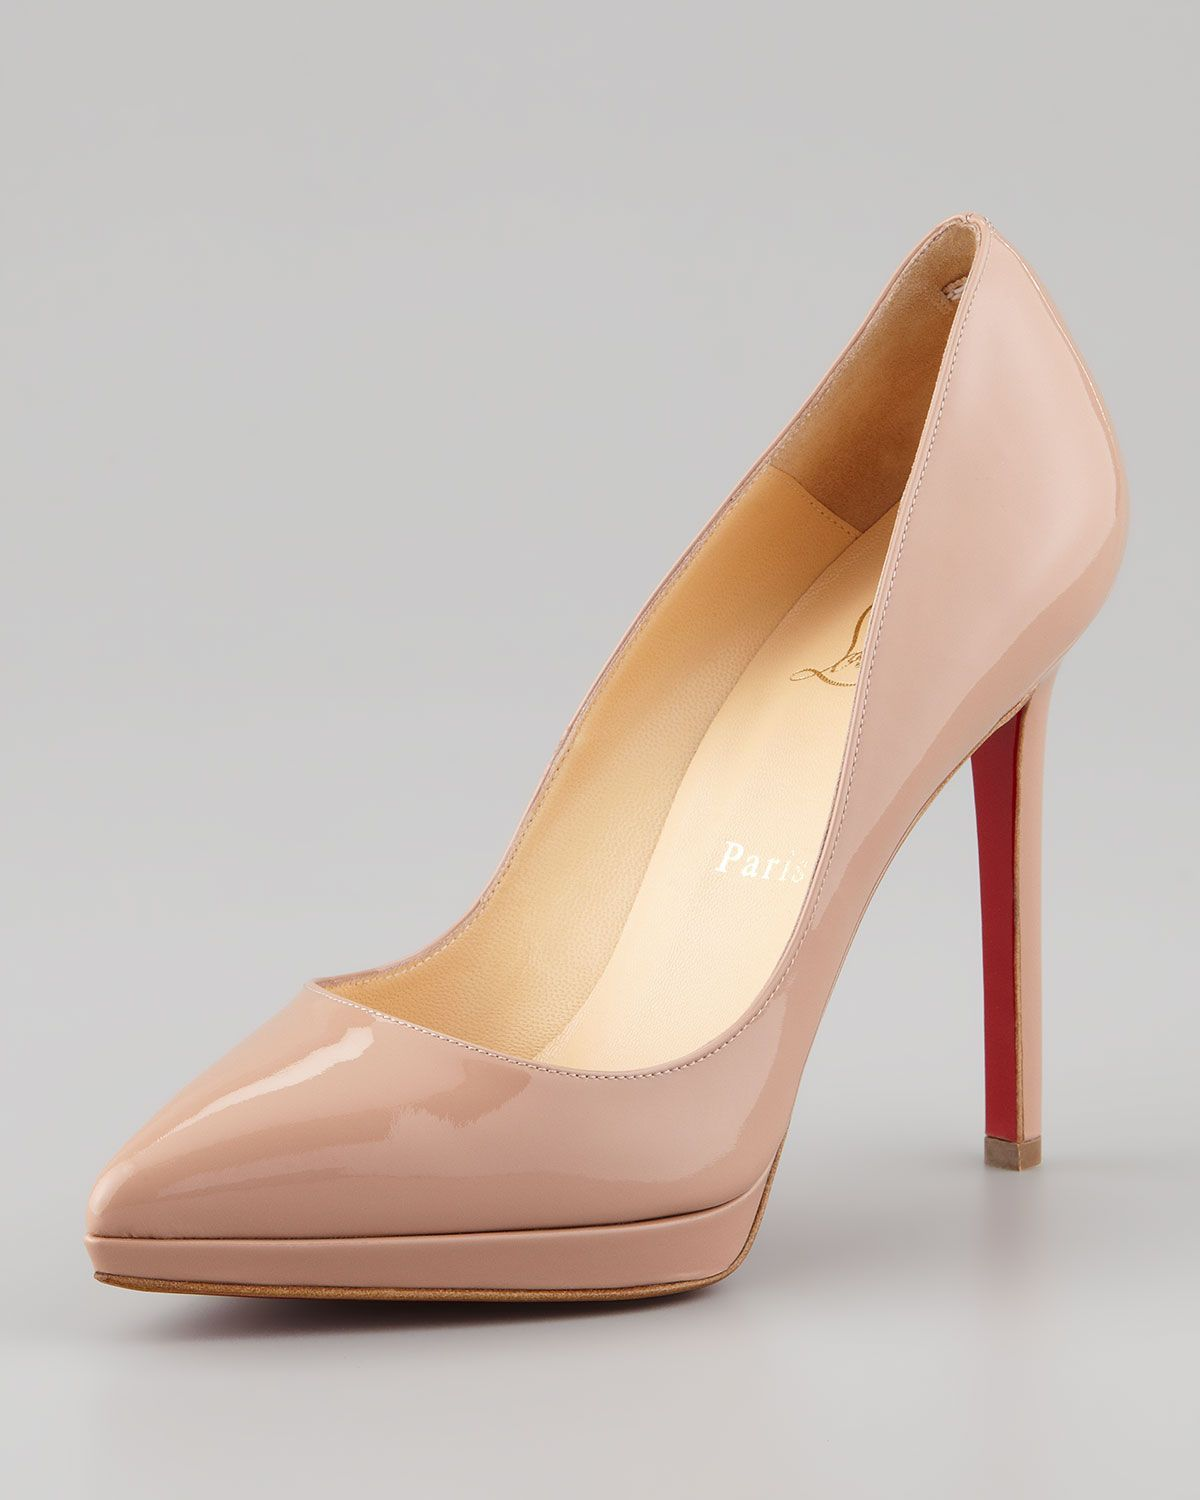 8f342bf2c4bd Next on my list! Christian Louboutin Pigalle Plato Patent Platform Red Sole  Pump